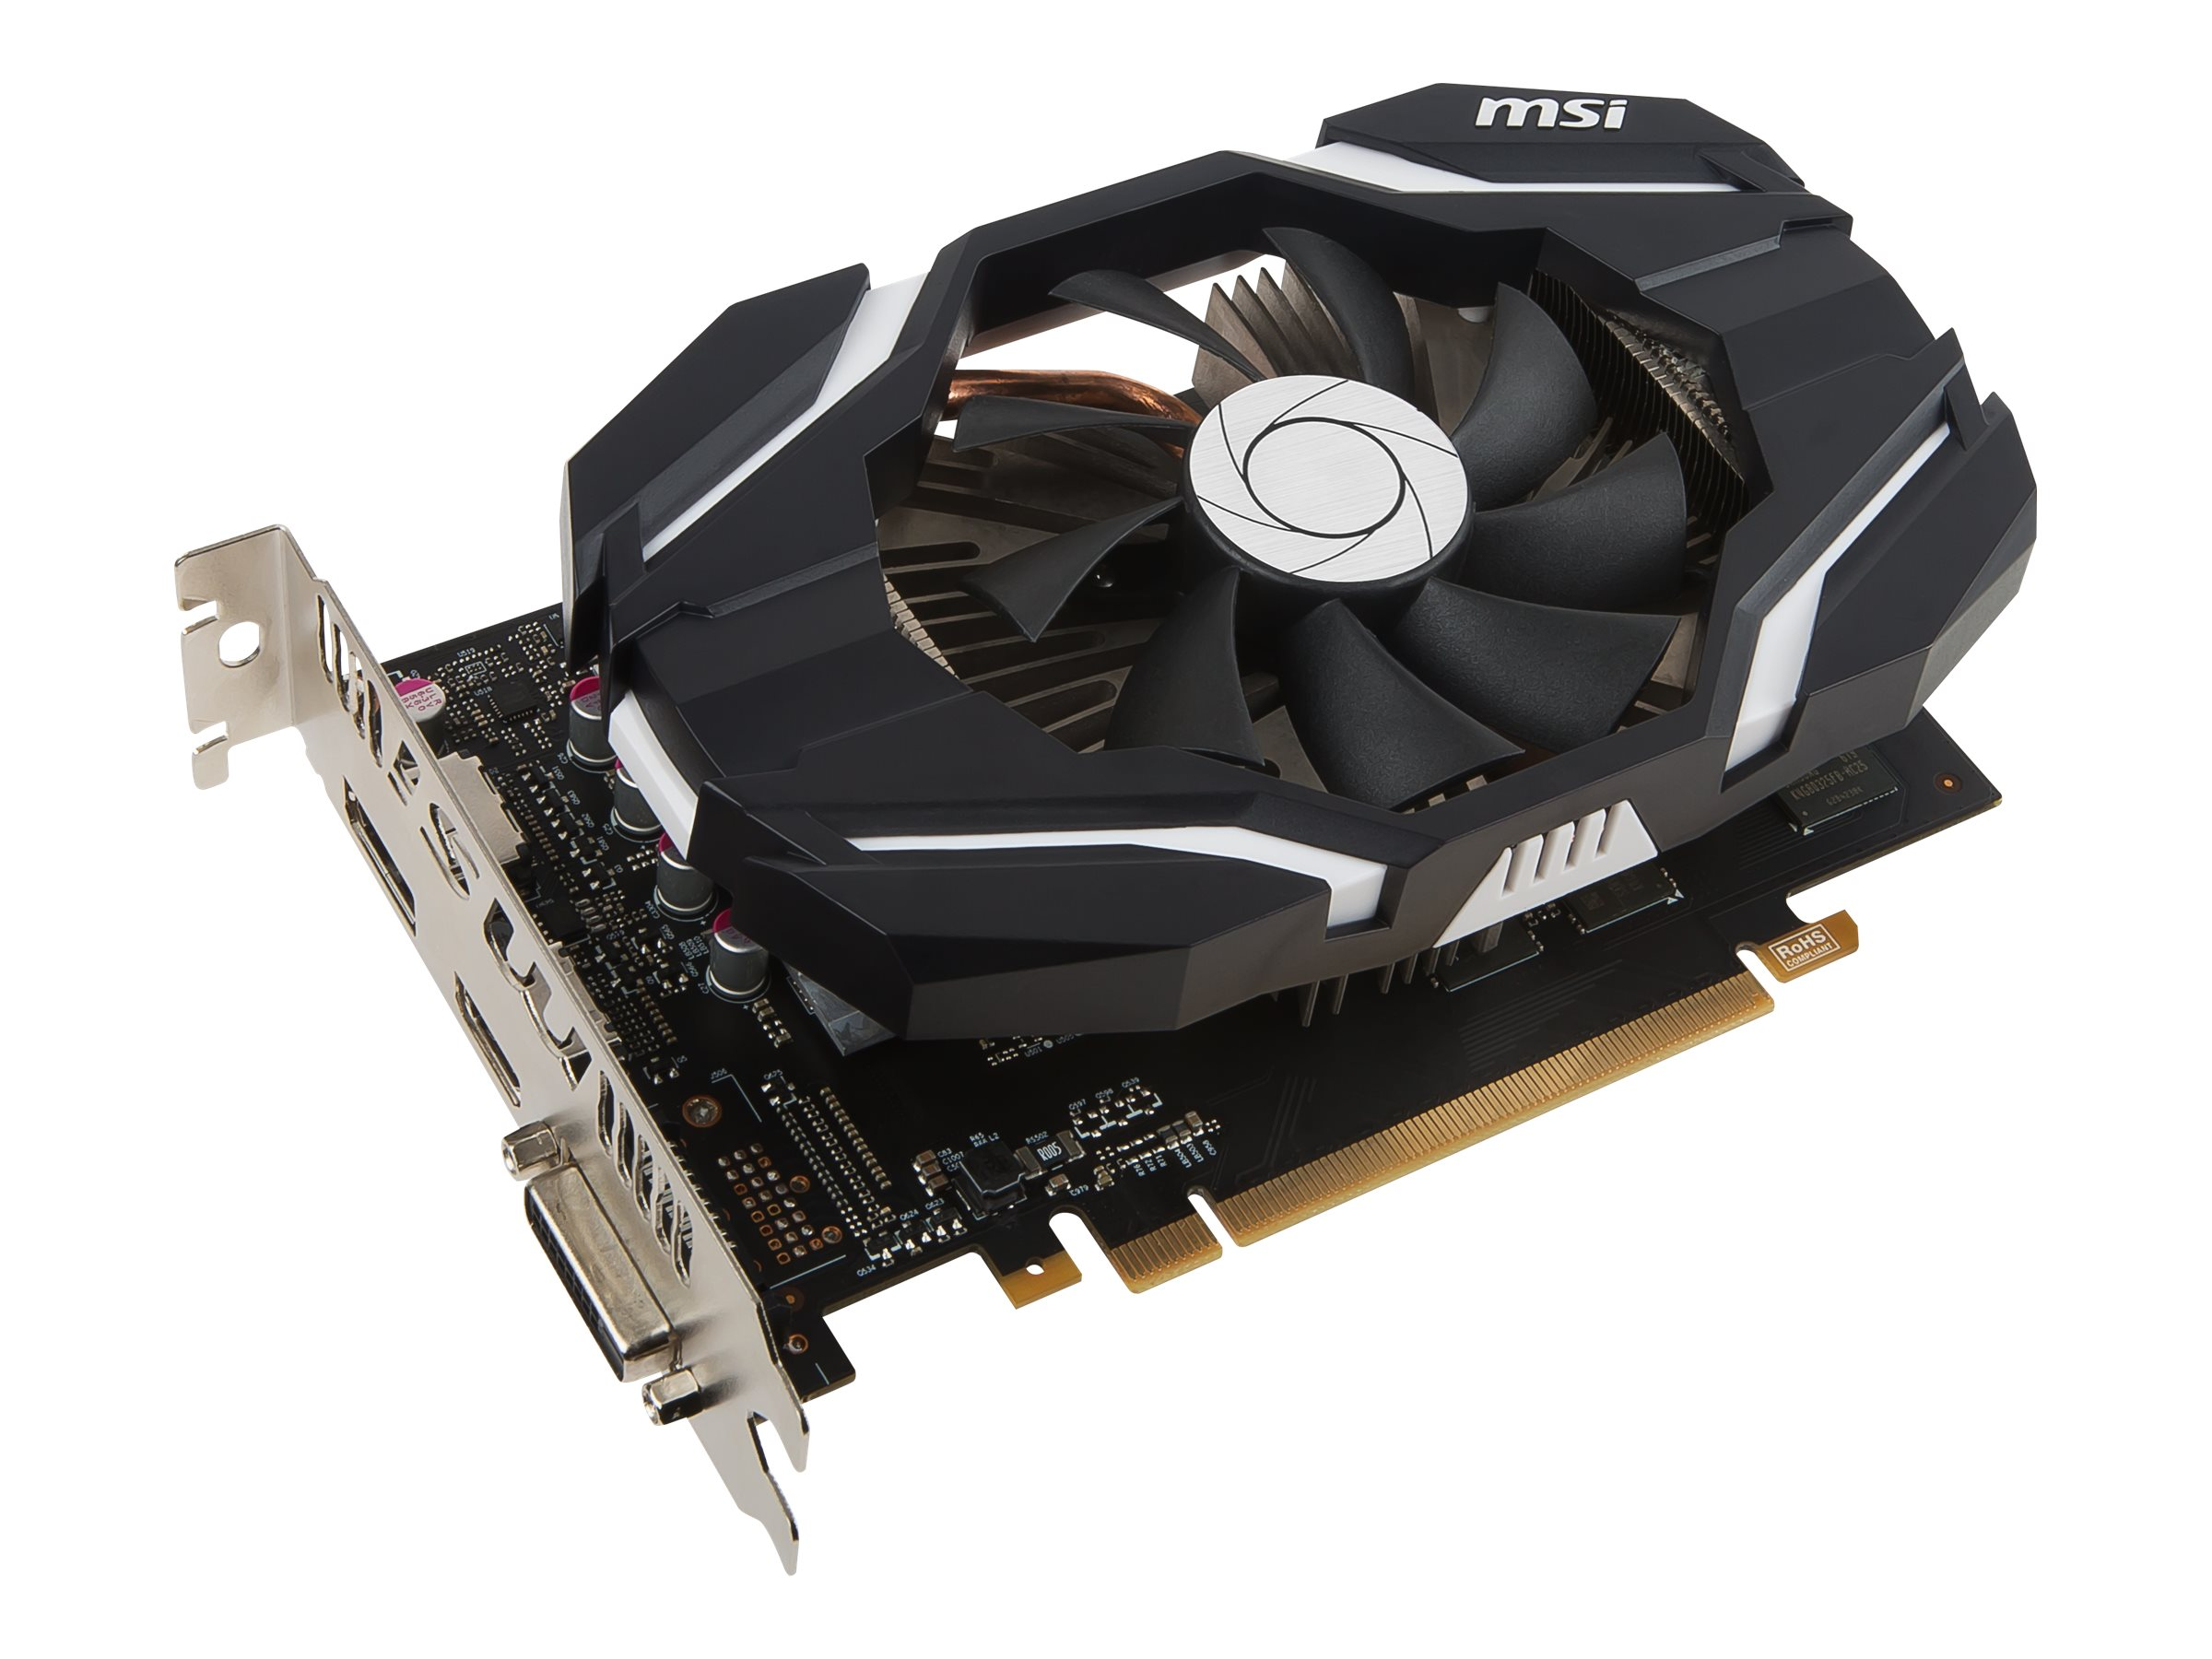 Microstar NVIDIA GeForce GTX 1060 PCIe 3.0 x16 Overclocked Graphics Card, 3GB GDDR5, GTX 1060 3G OCV1